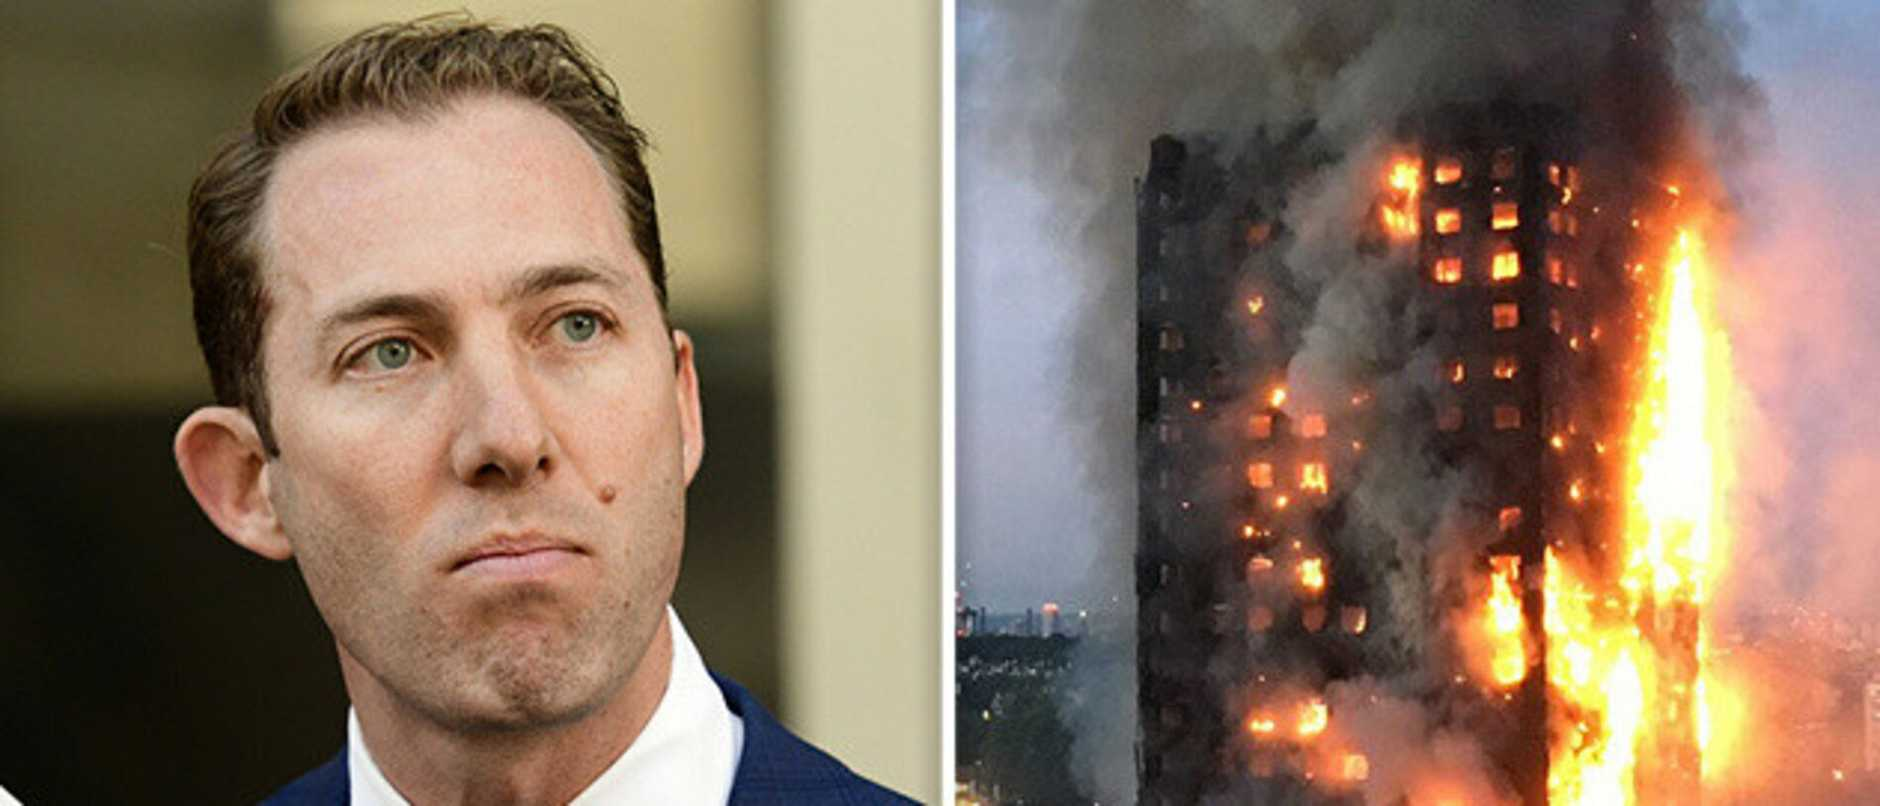 The state's peak strata body has called on the NSW government to provide $1 billion to fix flammable cladding on apartment buildings across the state with 650 complexes identified as being at risk of fire.